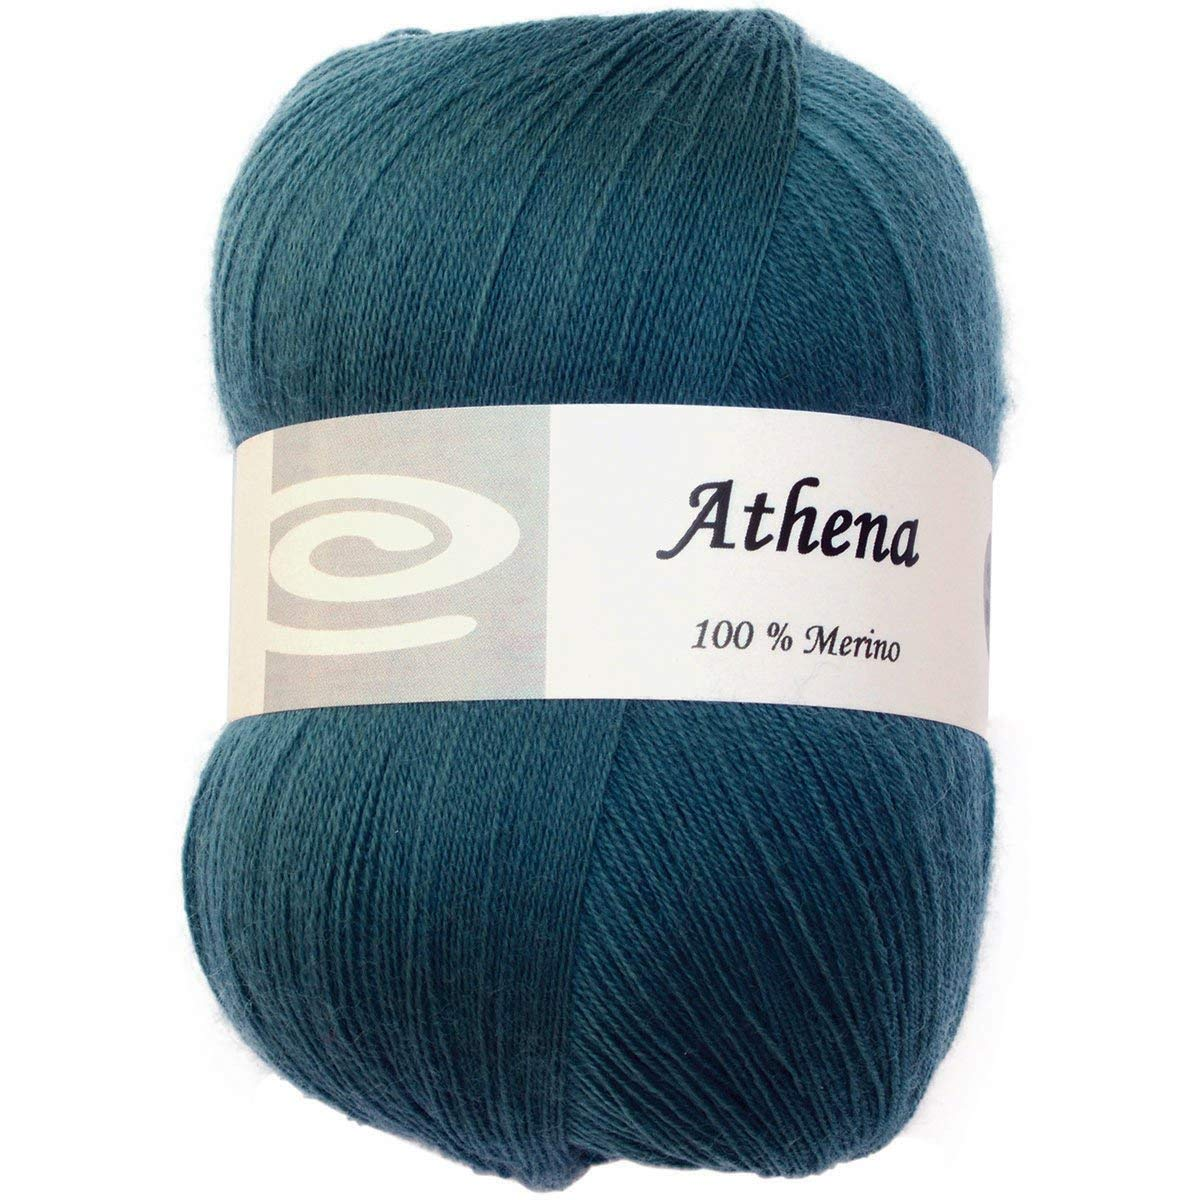 Cheap Yarn Peacock, find Yarn Peacock deals on line at Alibaba com